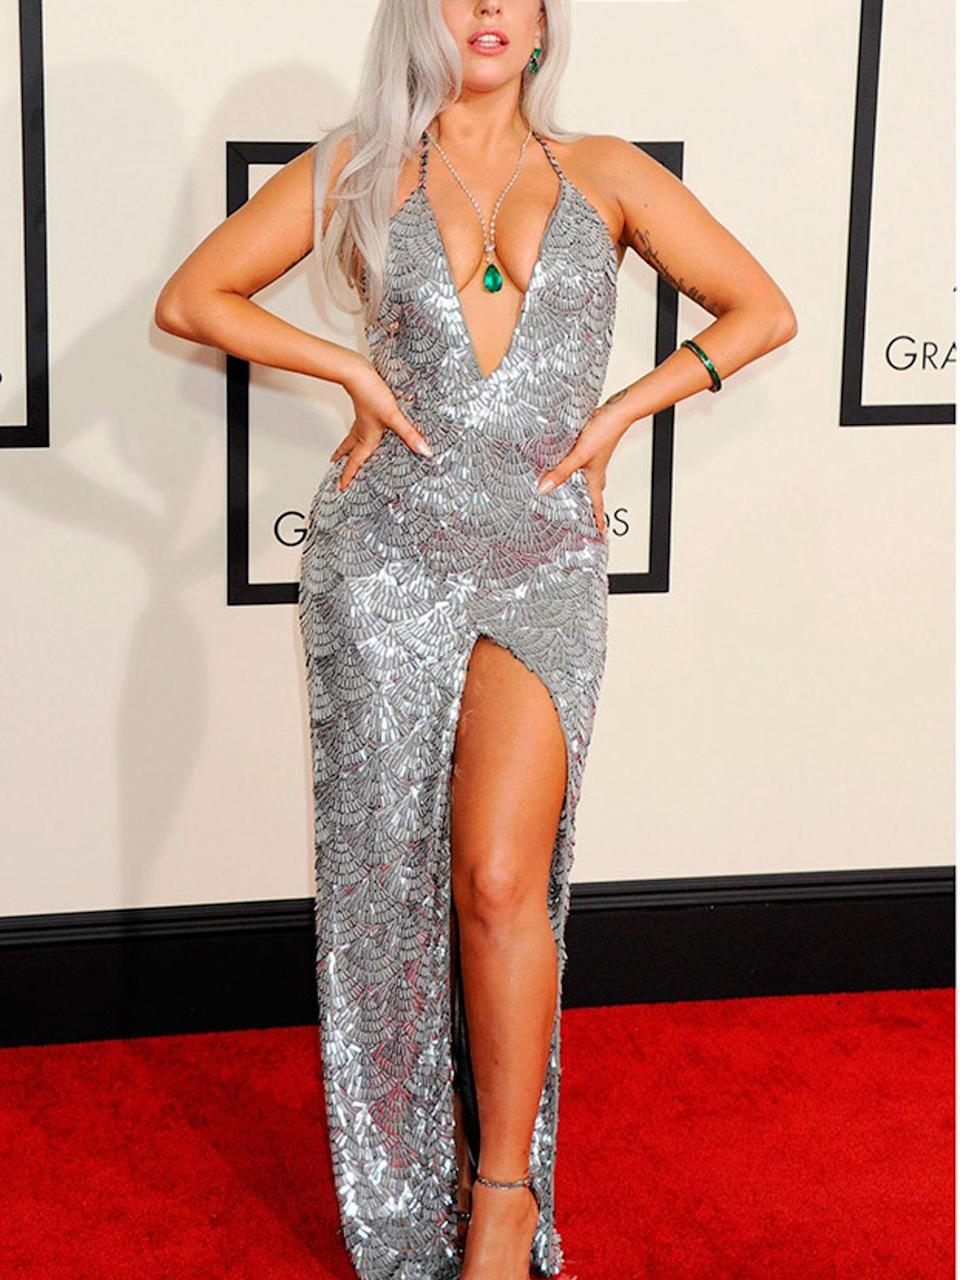 <p>Lady Gaga at the 57th Annual Grammy Awards in Los Angeles, February 2015.</p>